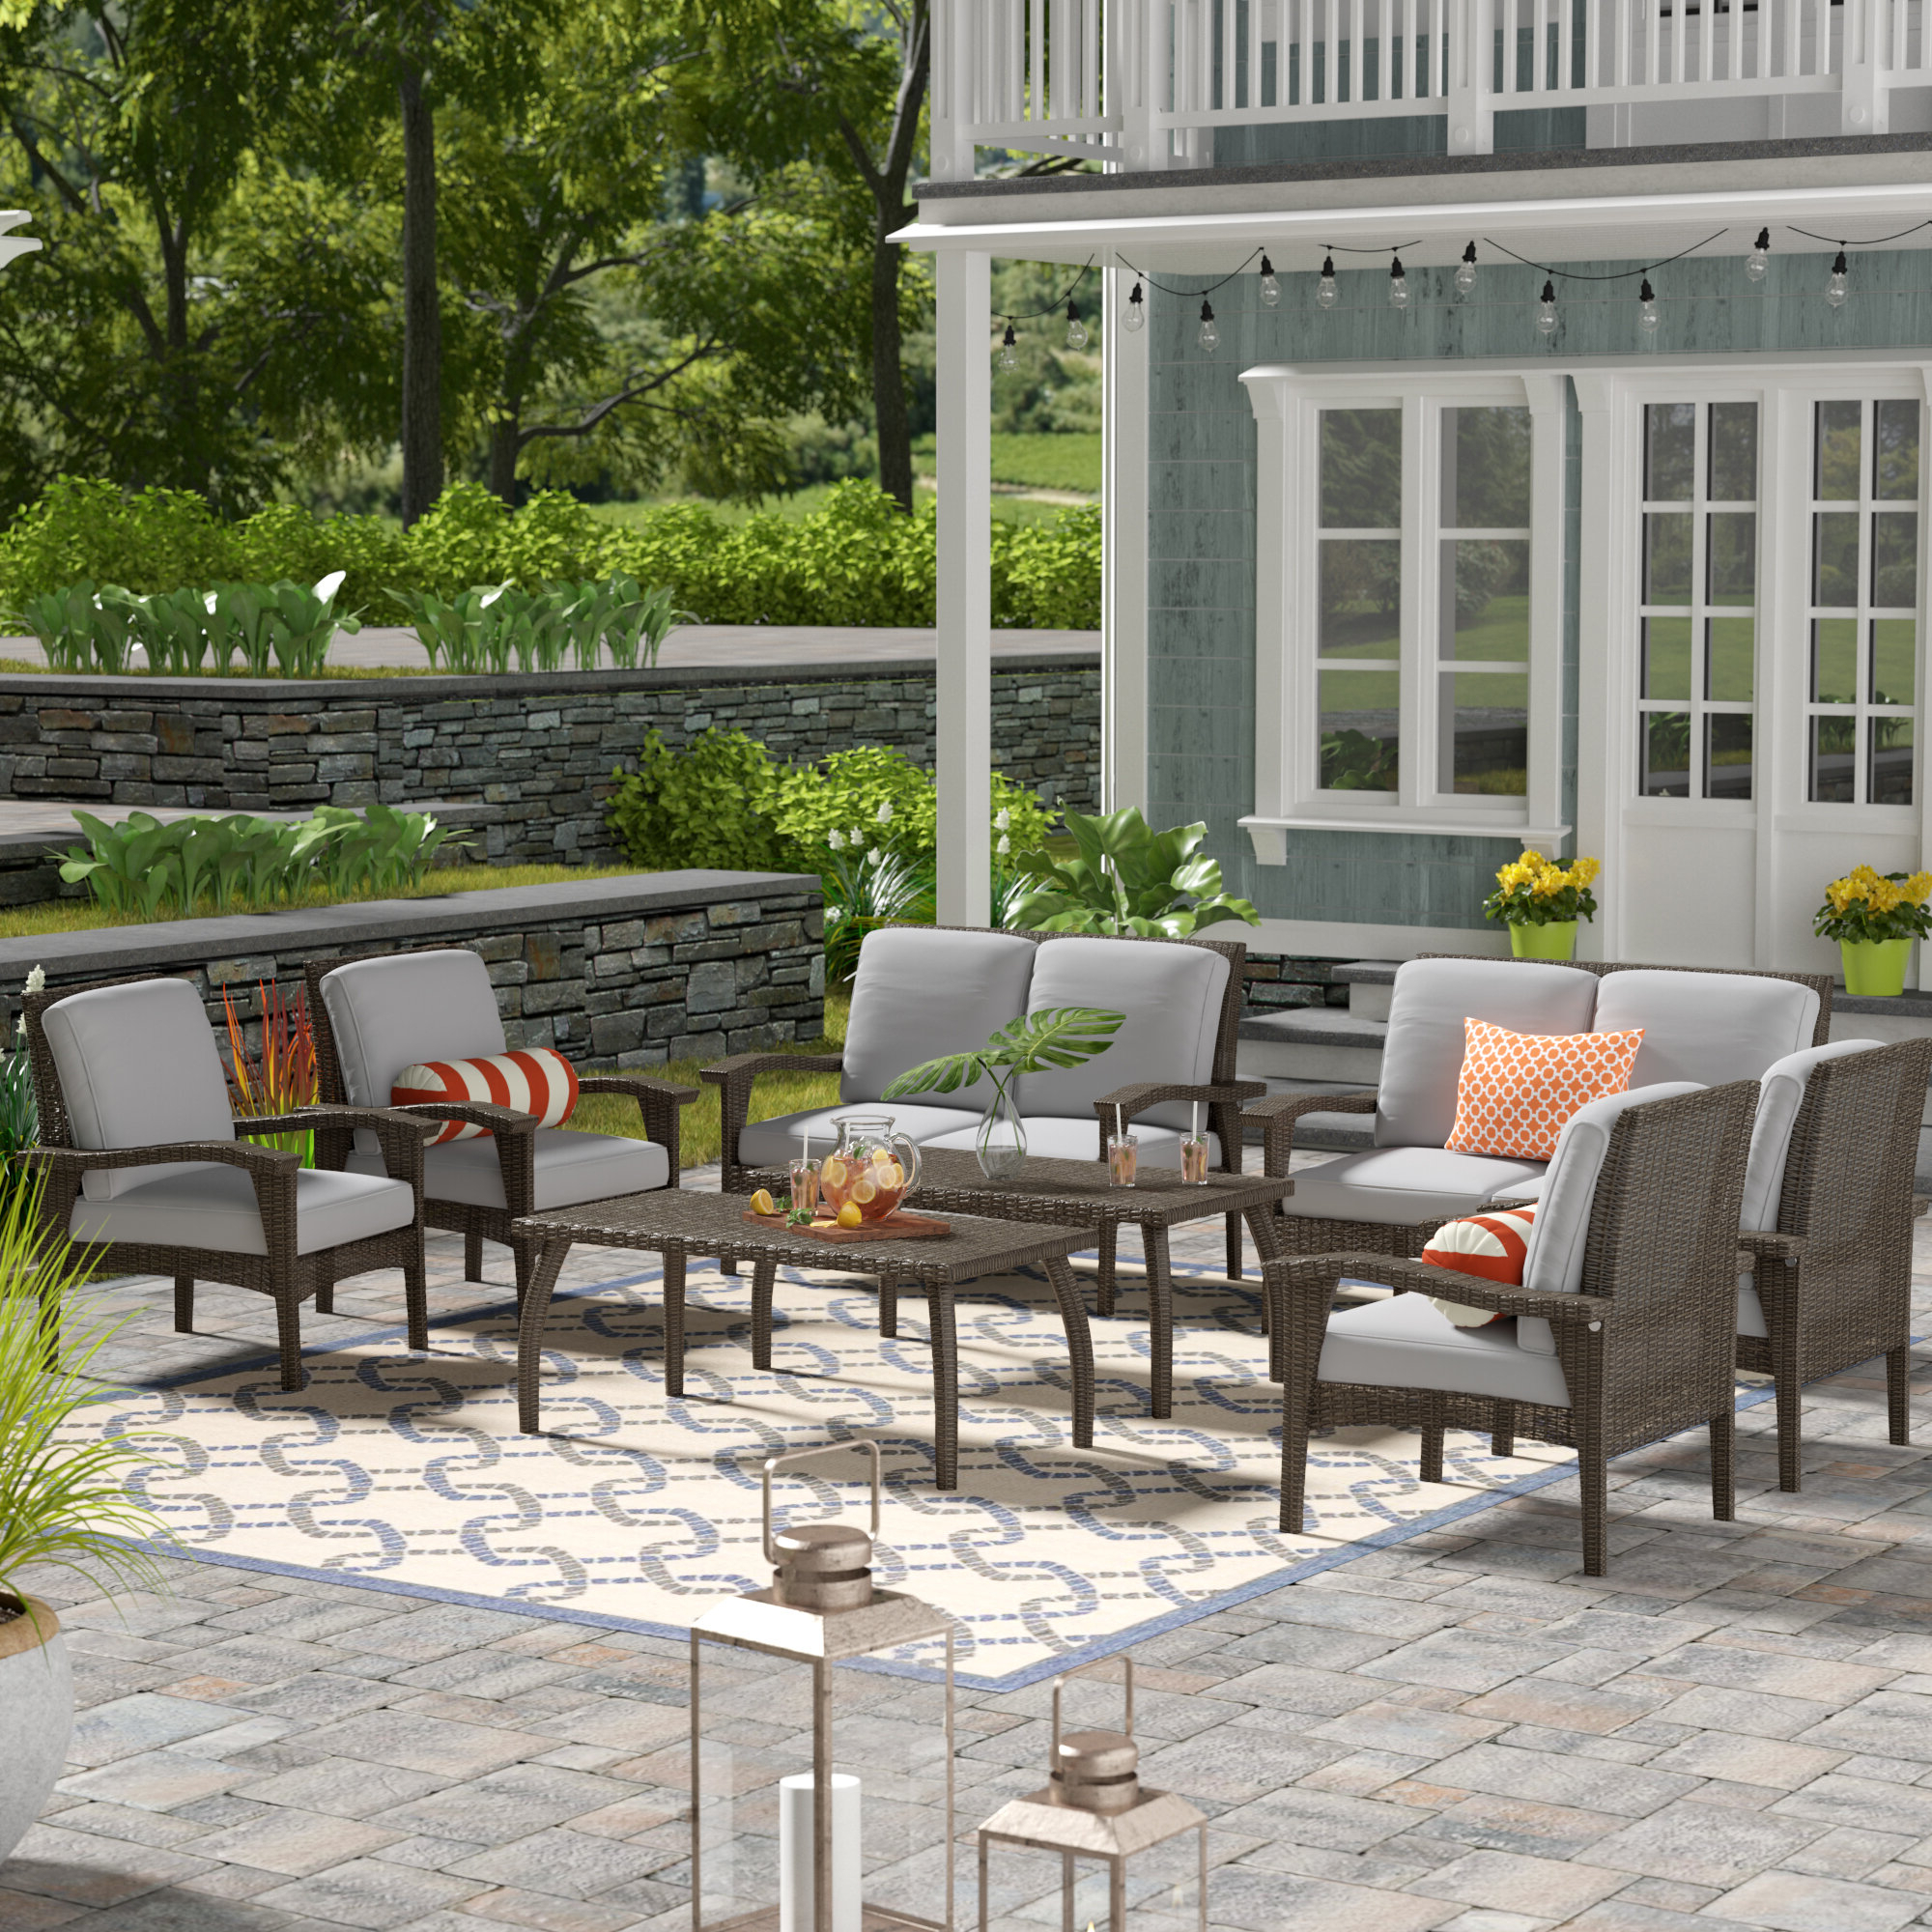 Current Hagler 8 Piece Sofa Seating Group With Cushions Within Hagler Outdoor Loveseats With Cushions (View 7 of 25)